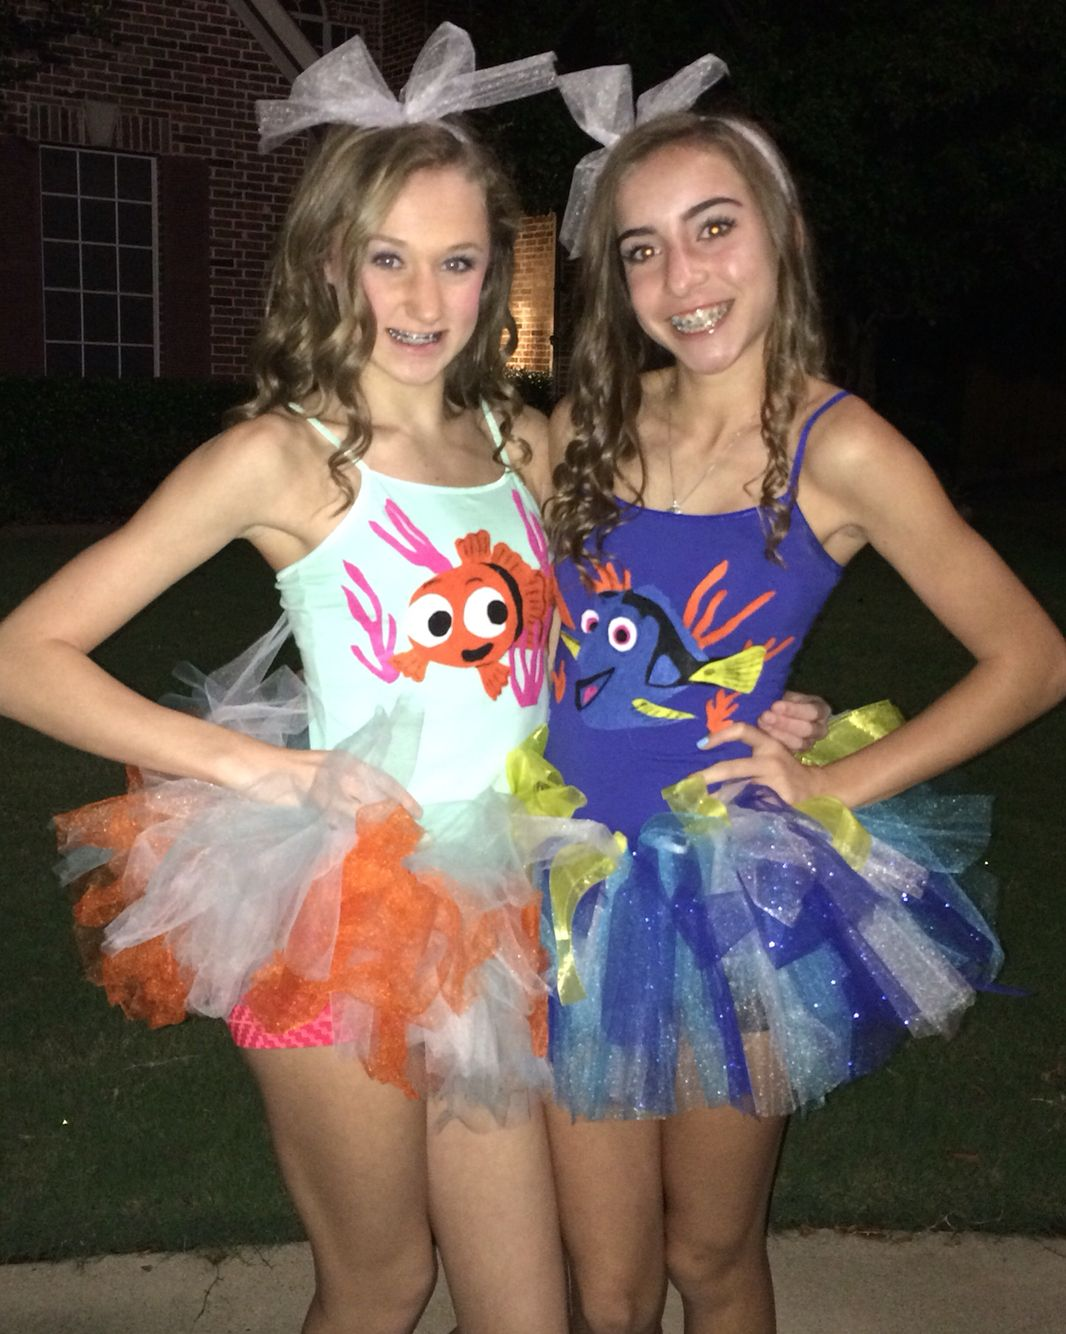 Cute Nemo and Dory costumes | Cute Halloween costumes | Pinterest ...